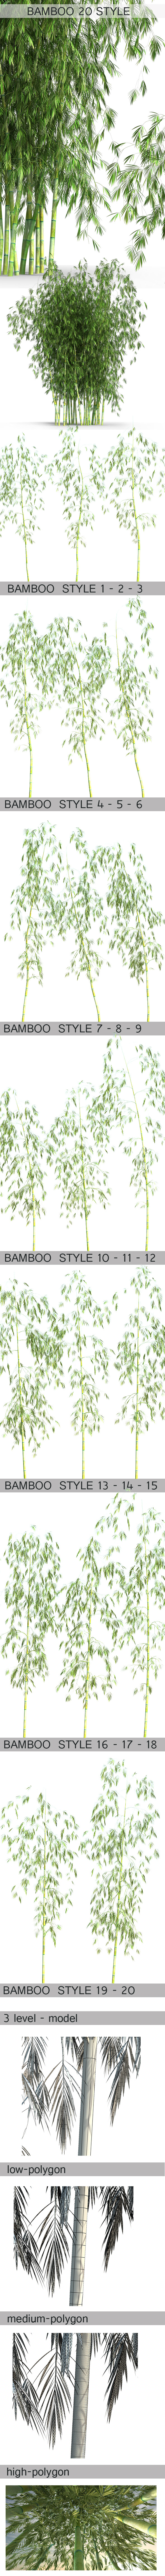 20 Style of Bamboo - 3DOcean Item for Sale